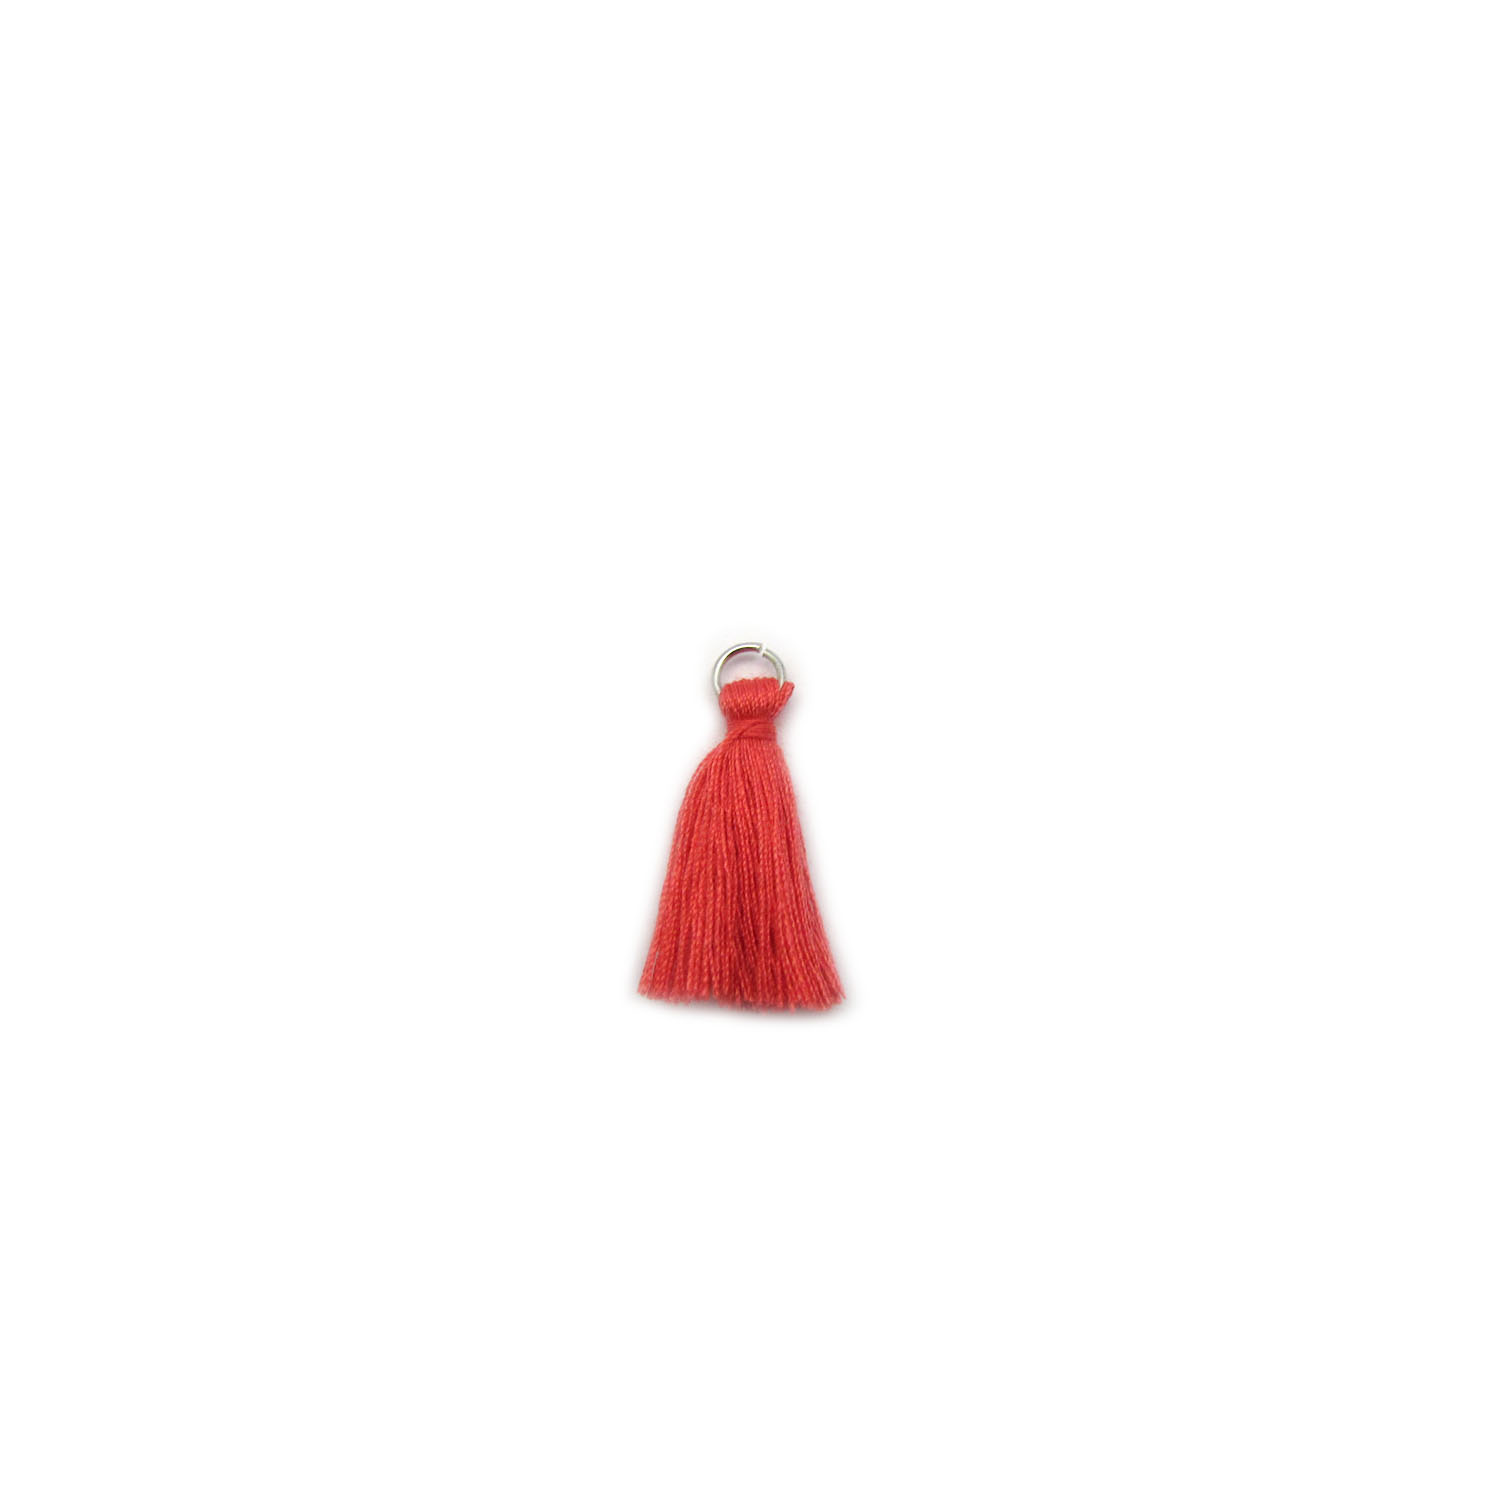 3cm cotton tassel with base metal silver jump ring - coral